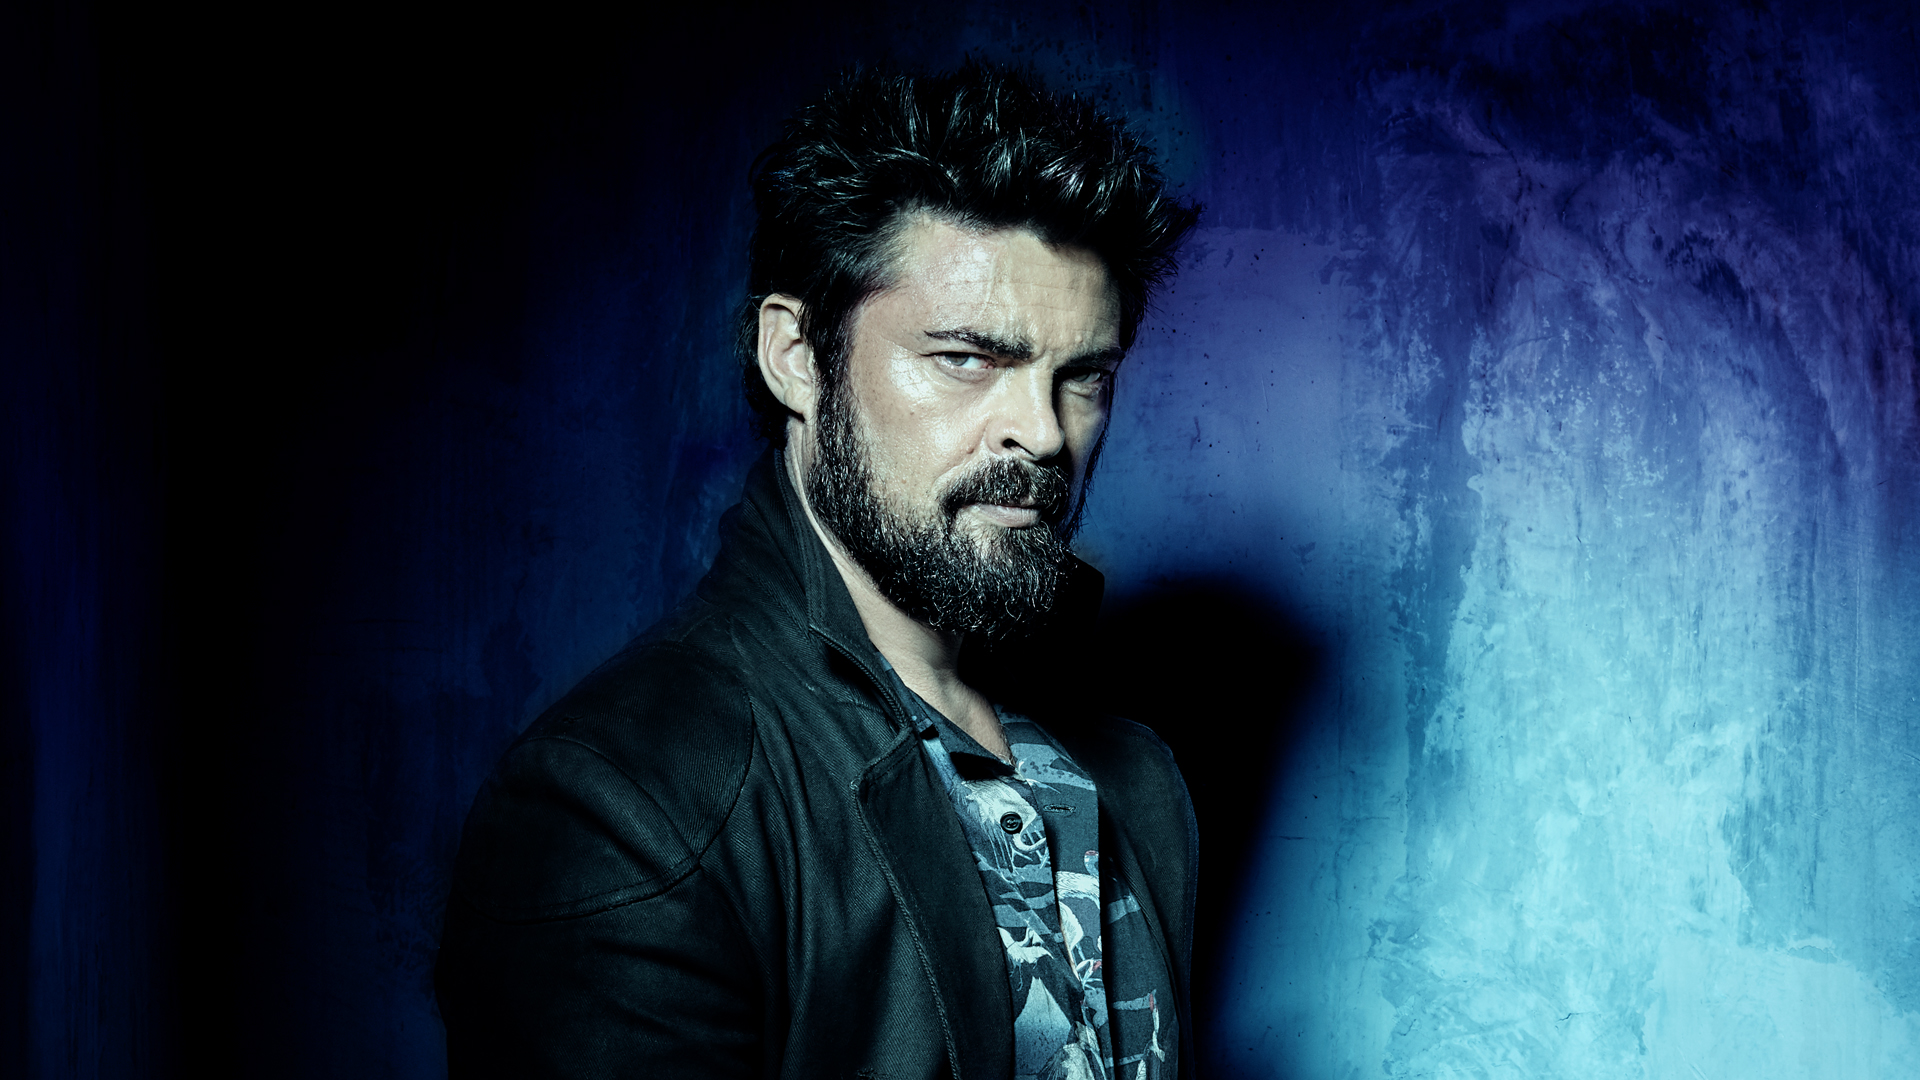 Man with beard scowling and looking to camera on a black and blue background